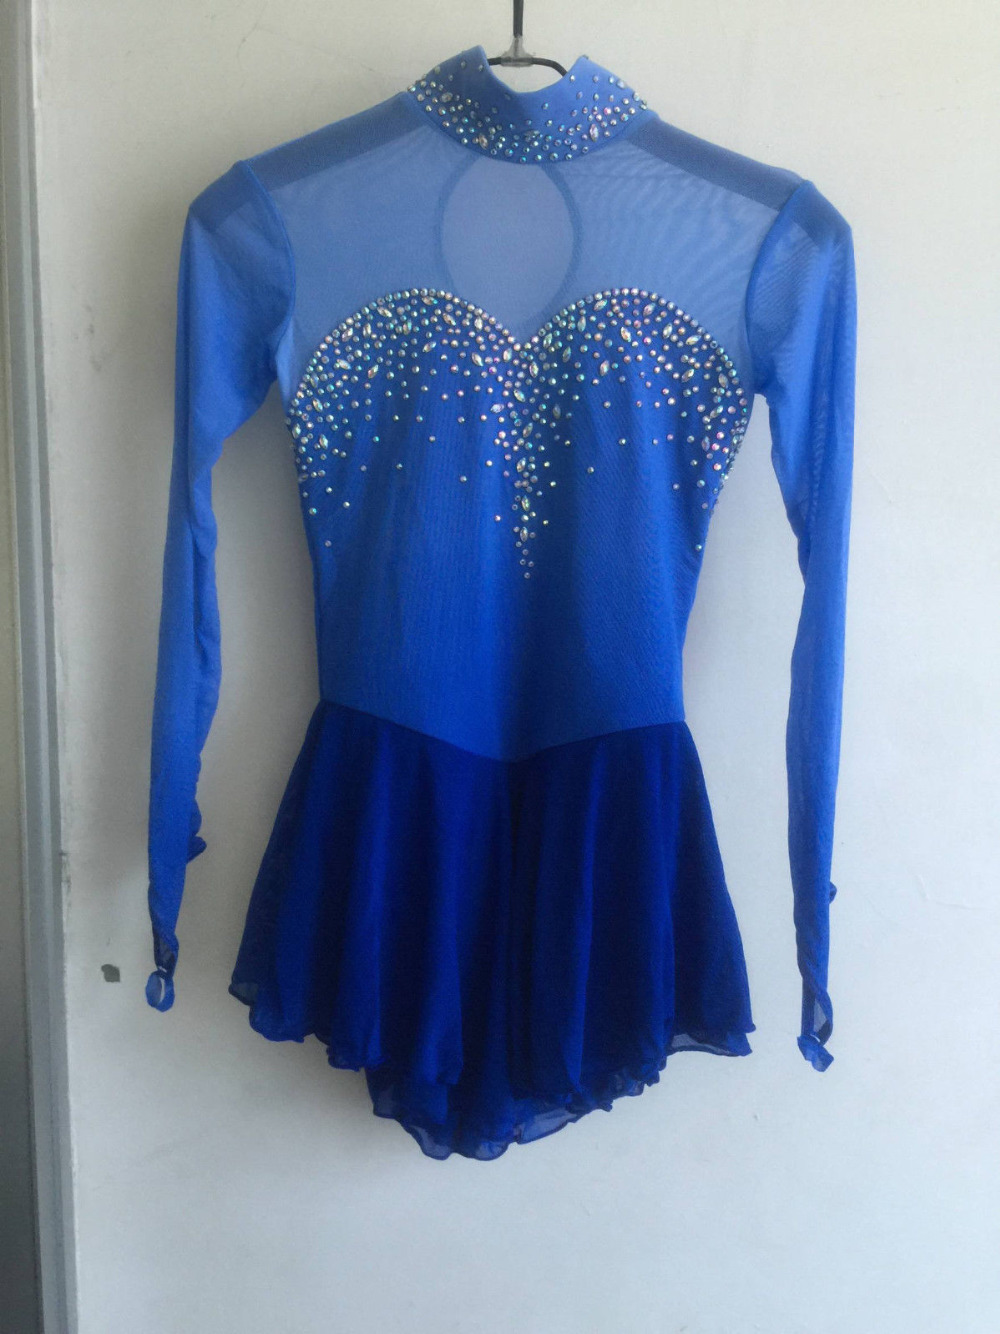 Ice skating dresses for competition